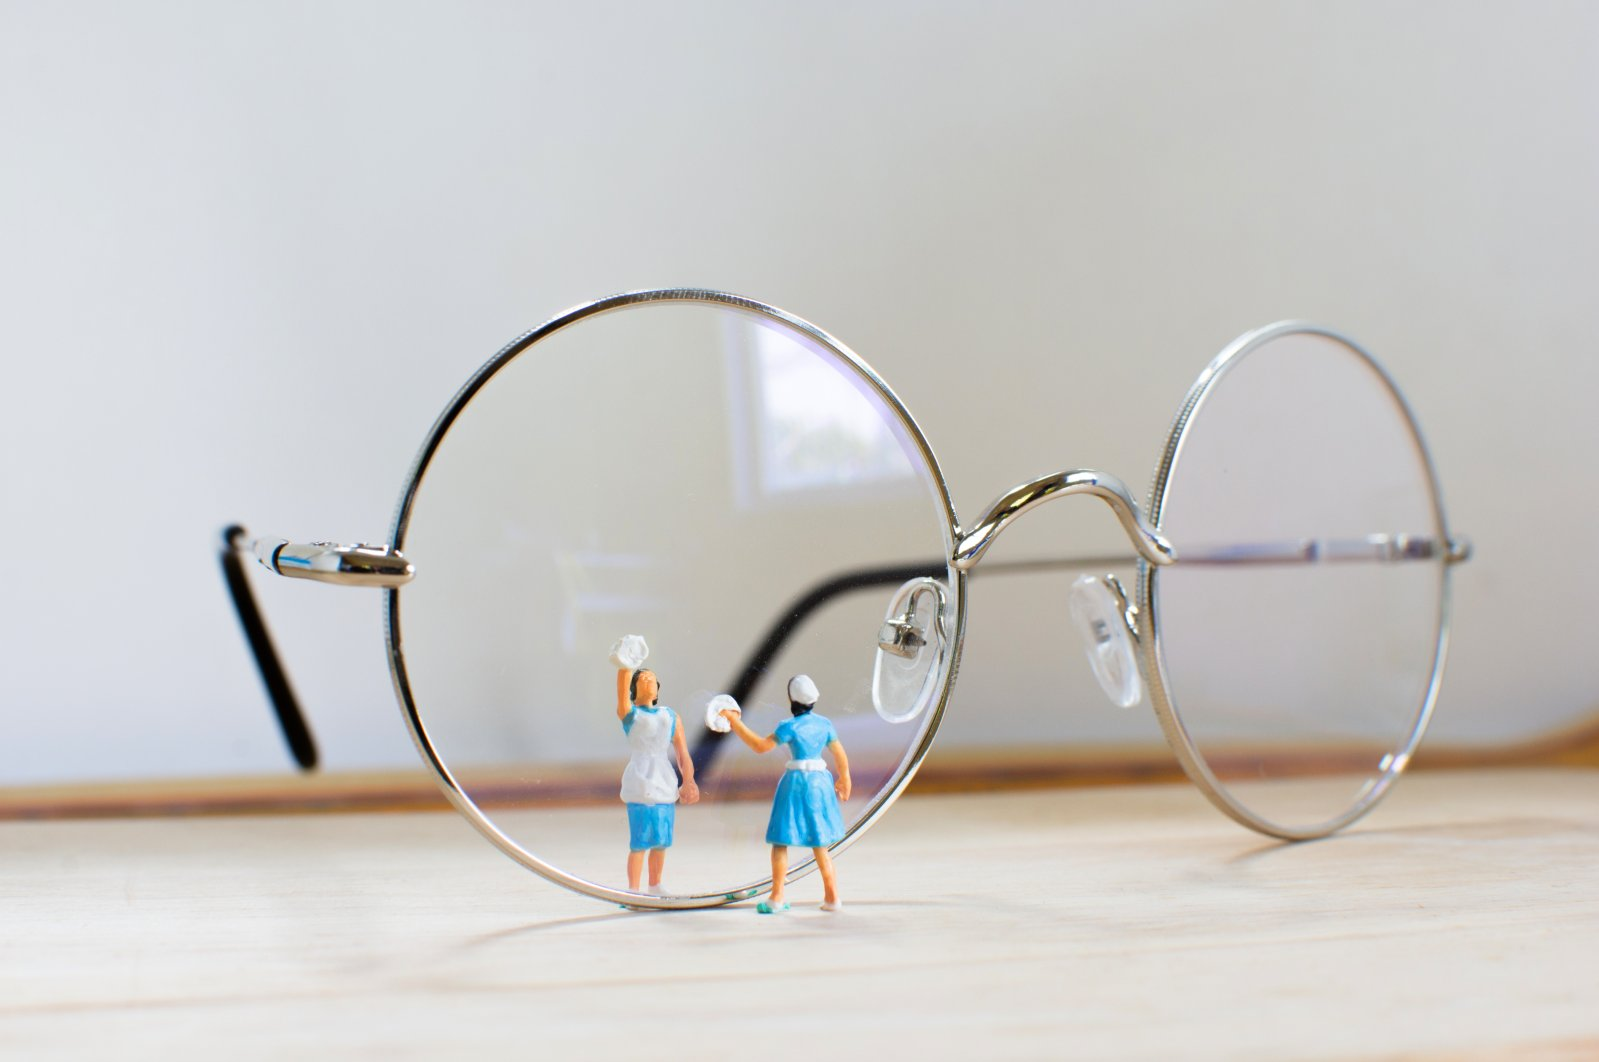 Germs are more likely to grow on glasses that haven't been cleaned in a while. (Shutterstock Photo)